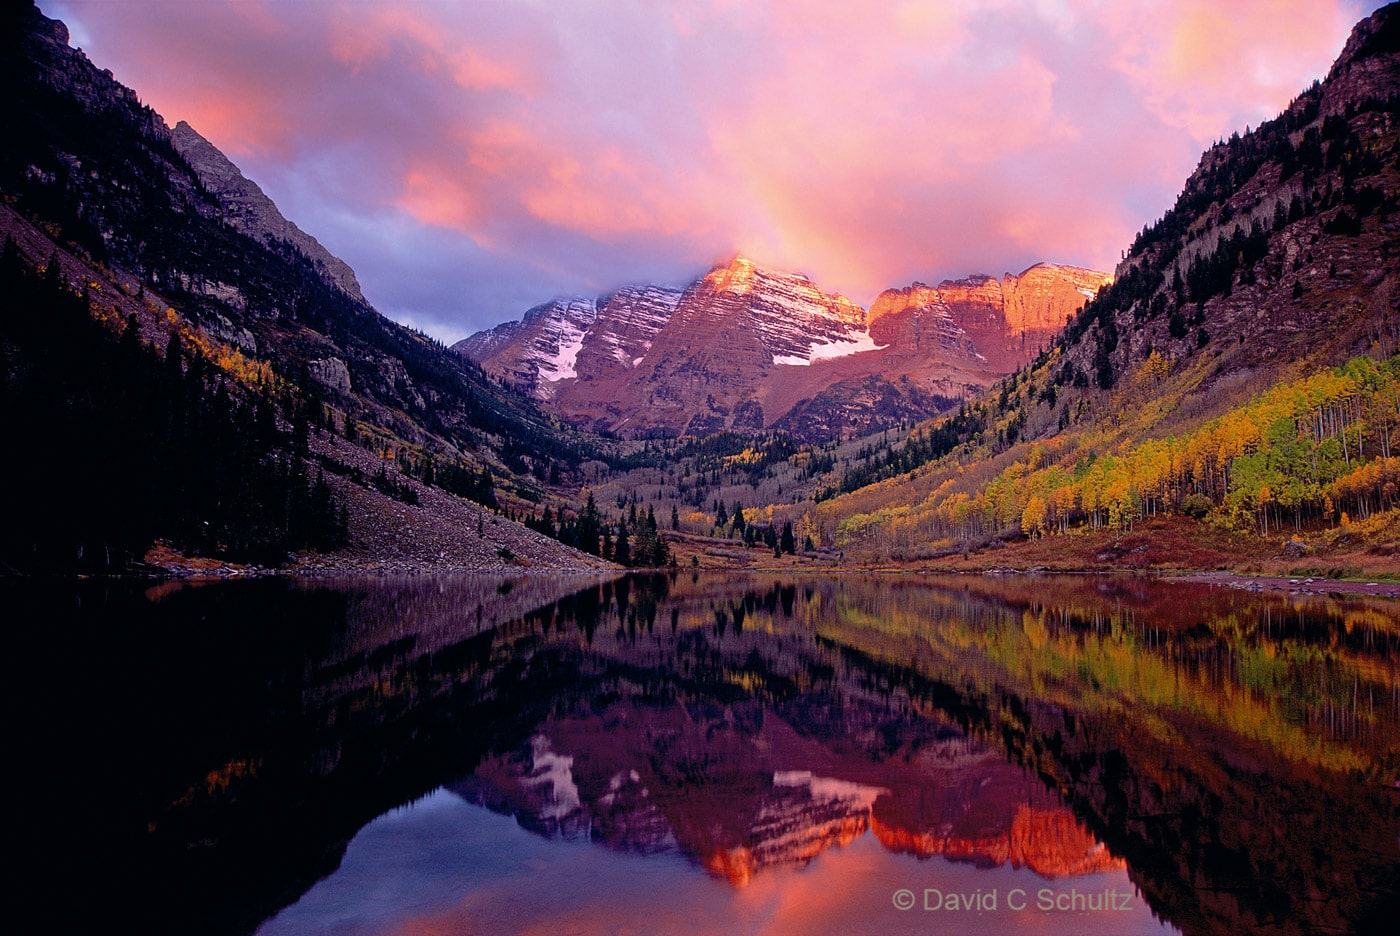 The Maroon Bells, CO - Image #68-3398